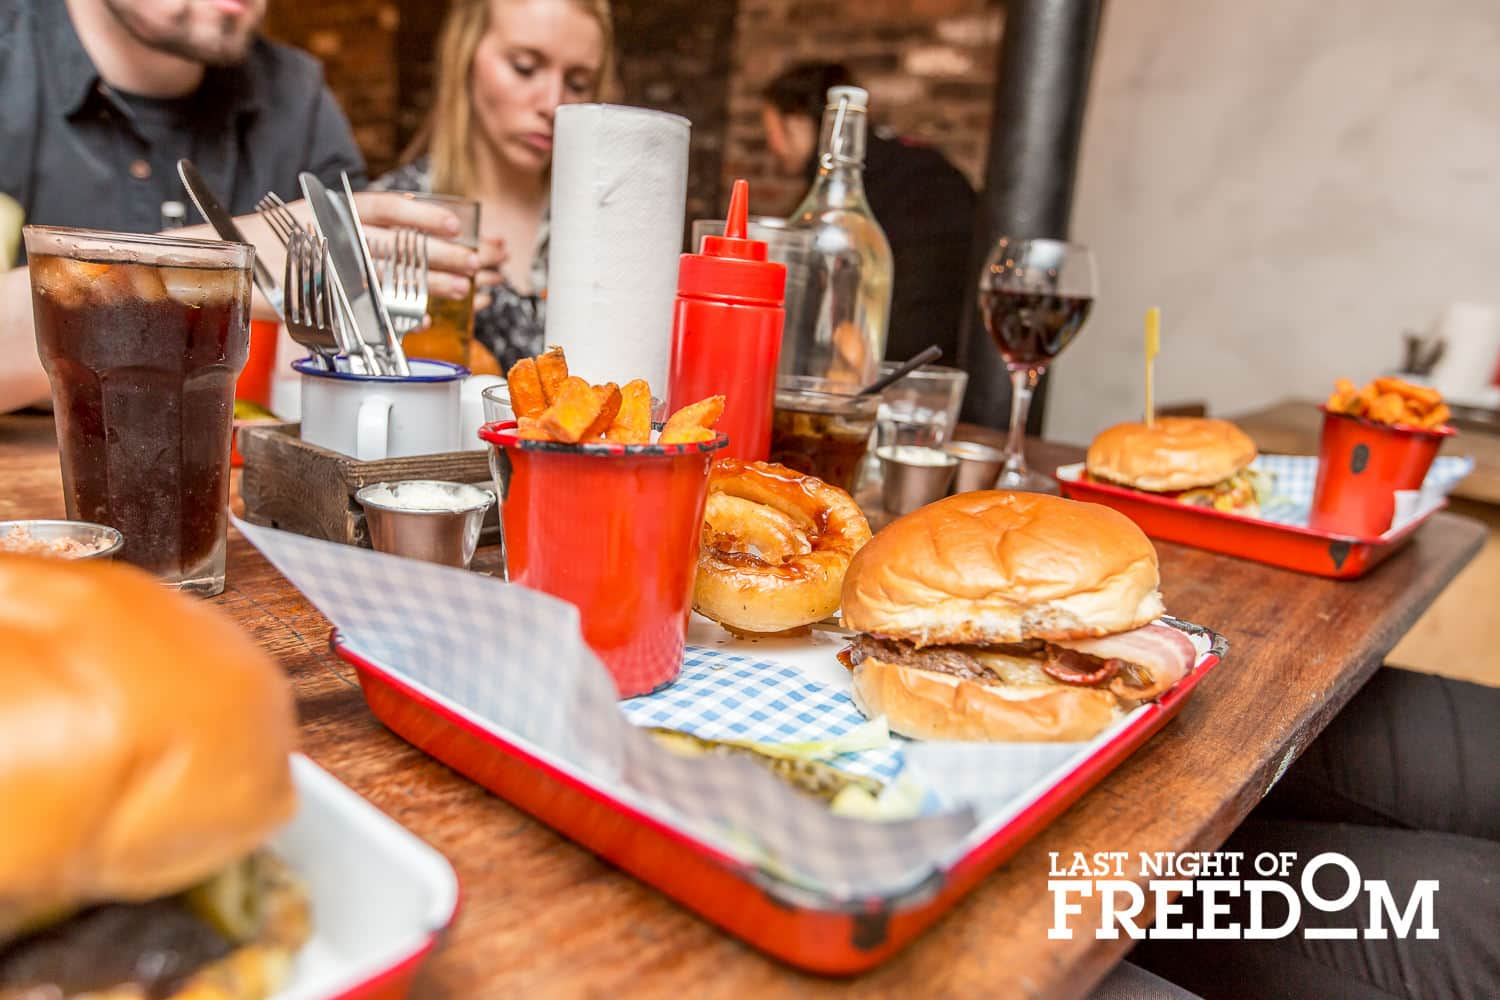 A close up of the delicious burgers at the Fat Hippo Underground eatery, Newcastle Upon Tyne